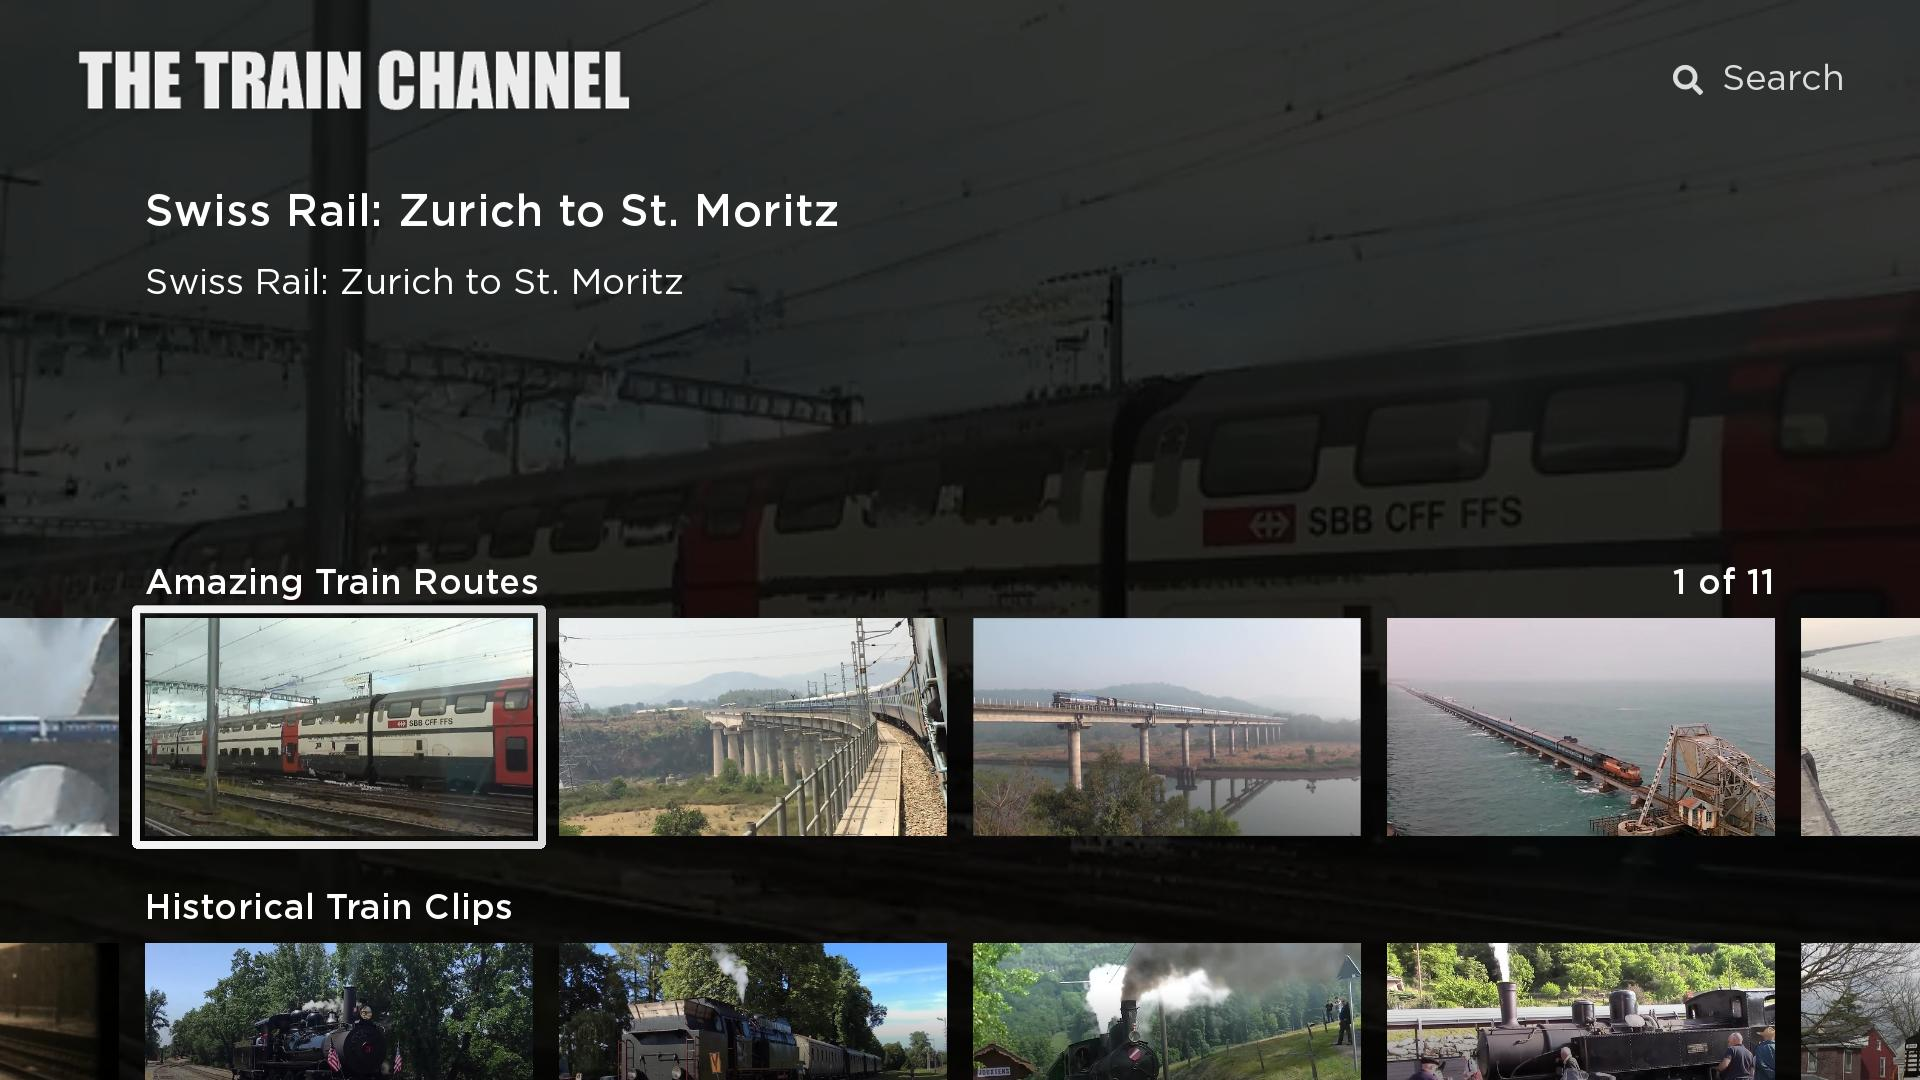 The Train Channel Screenshot 001